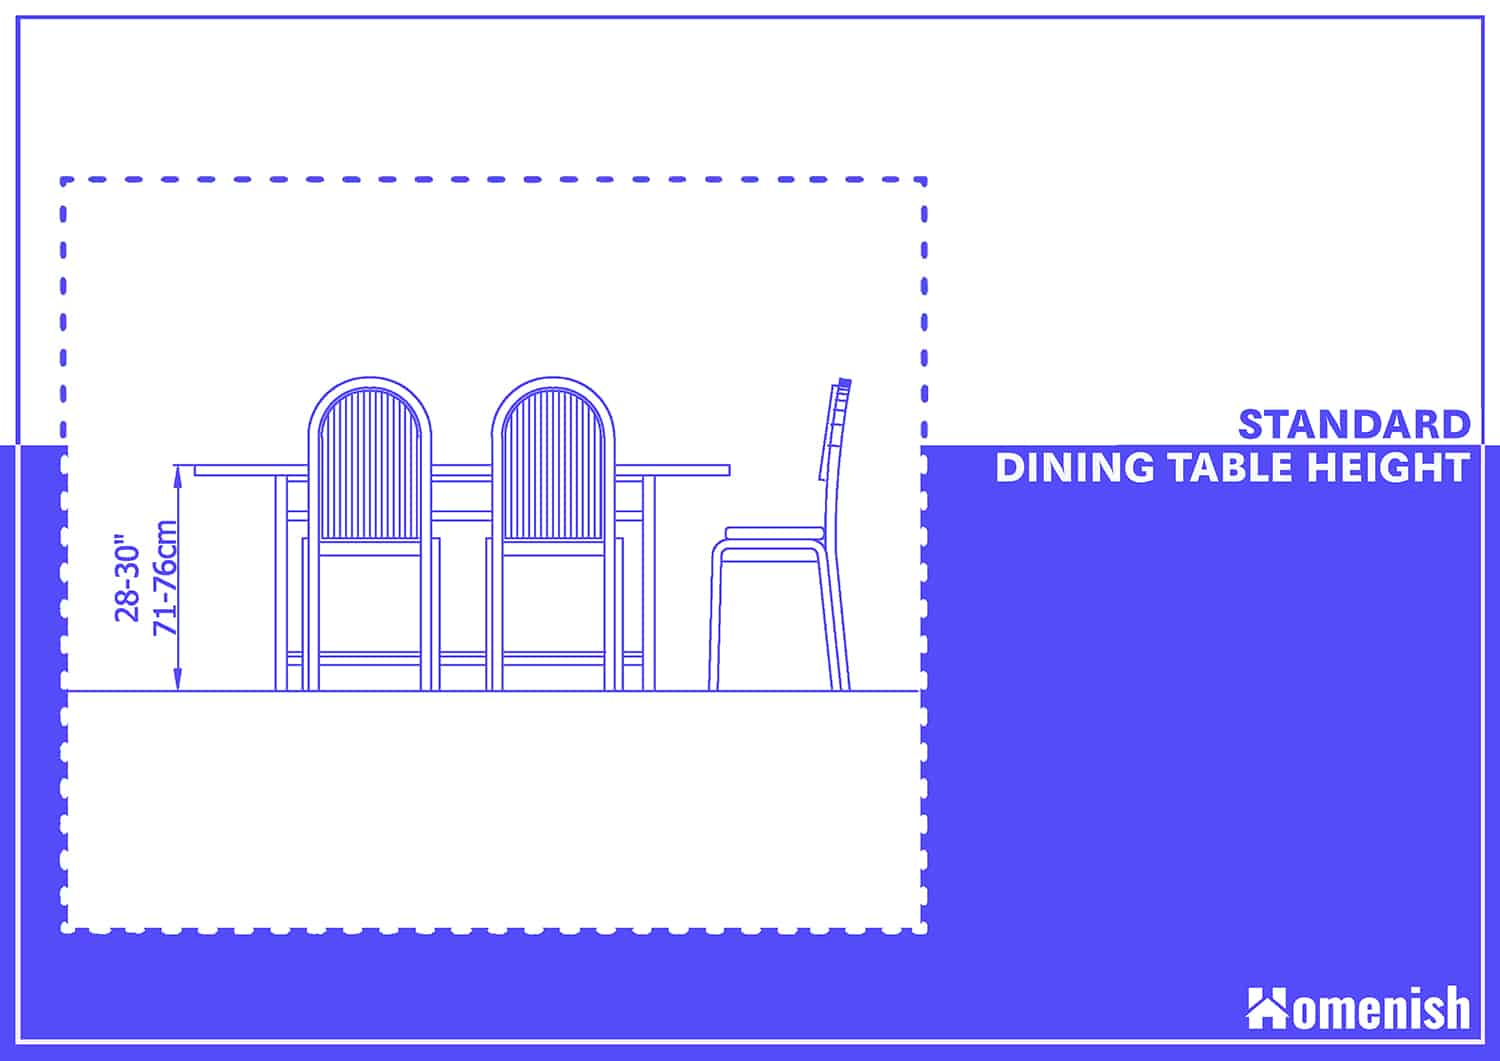 Standard Dining Table Height